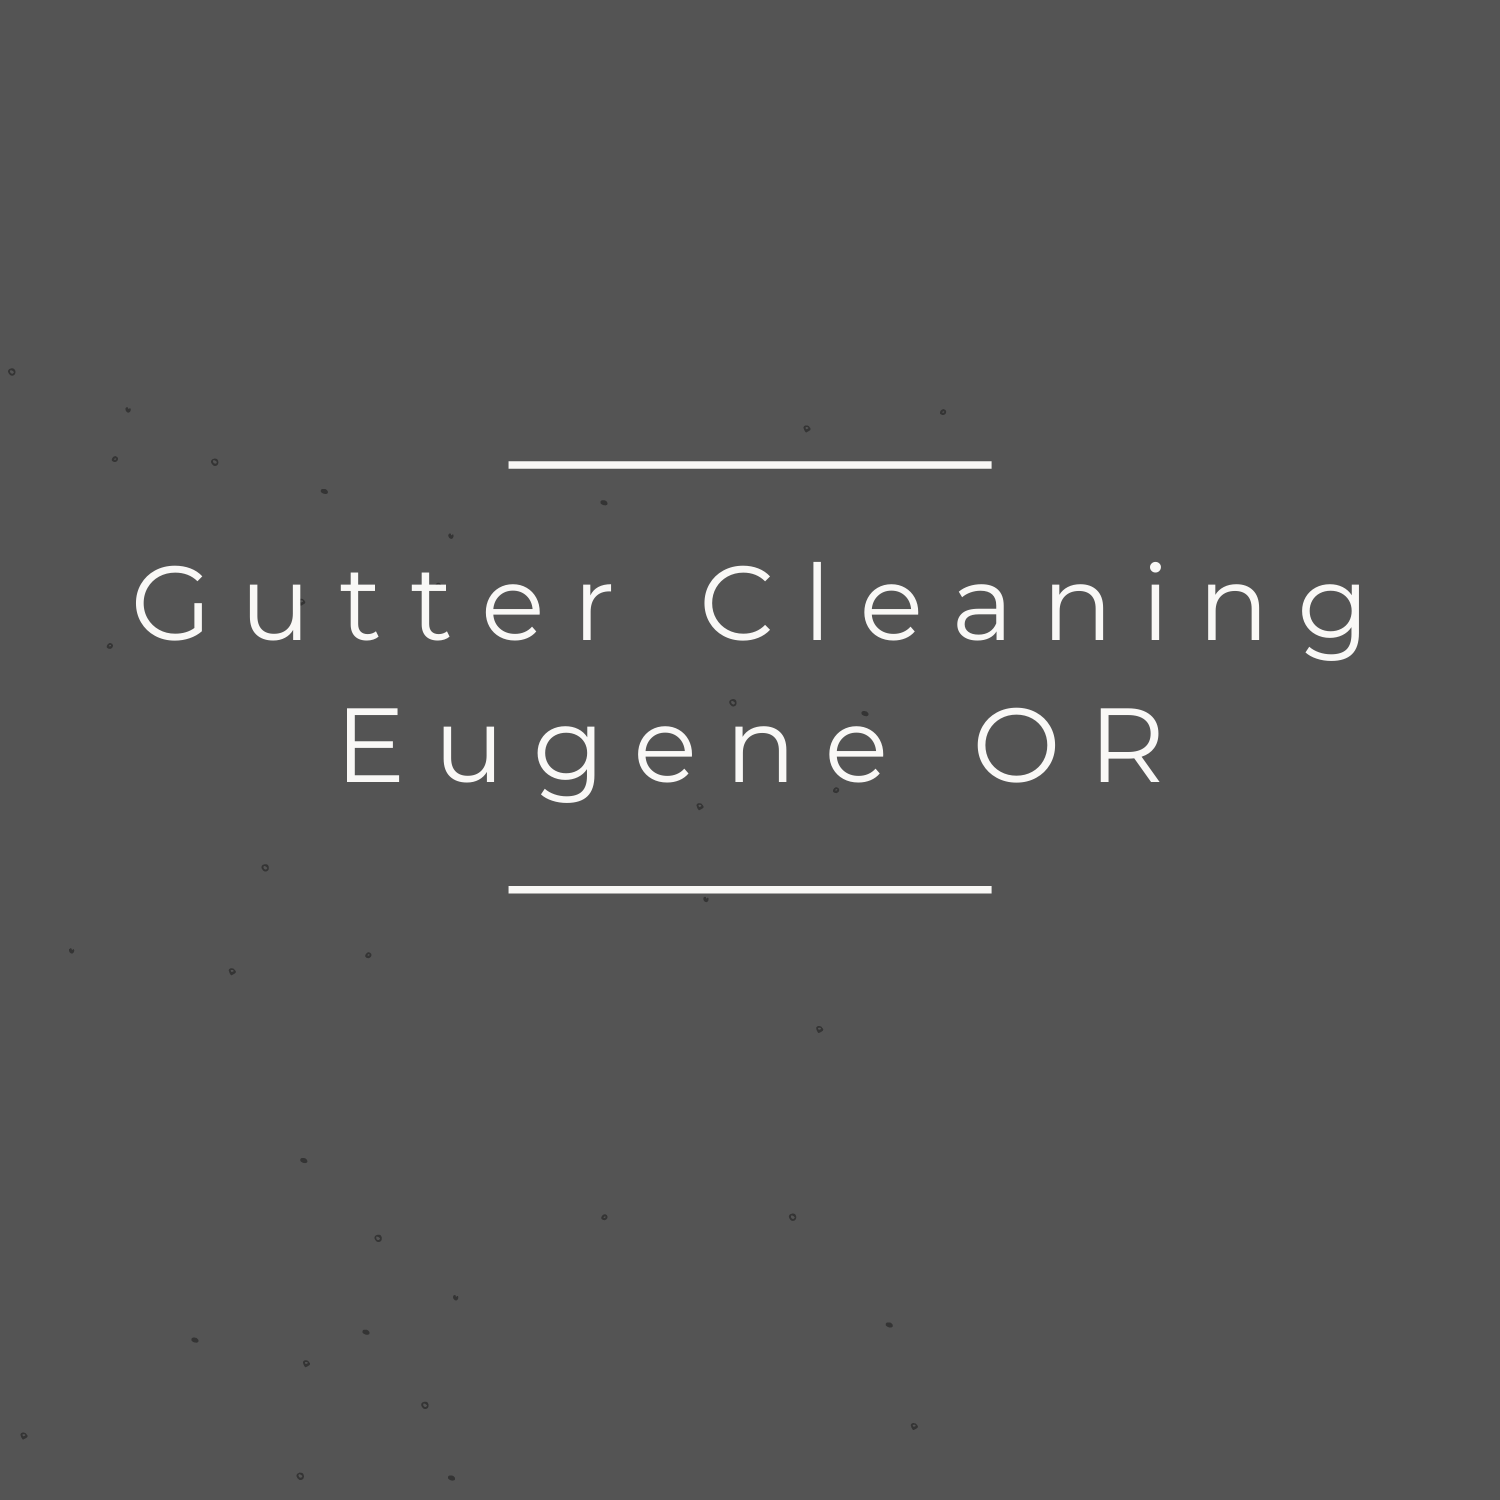 Gutter Cleaning Eugene OR